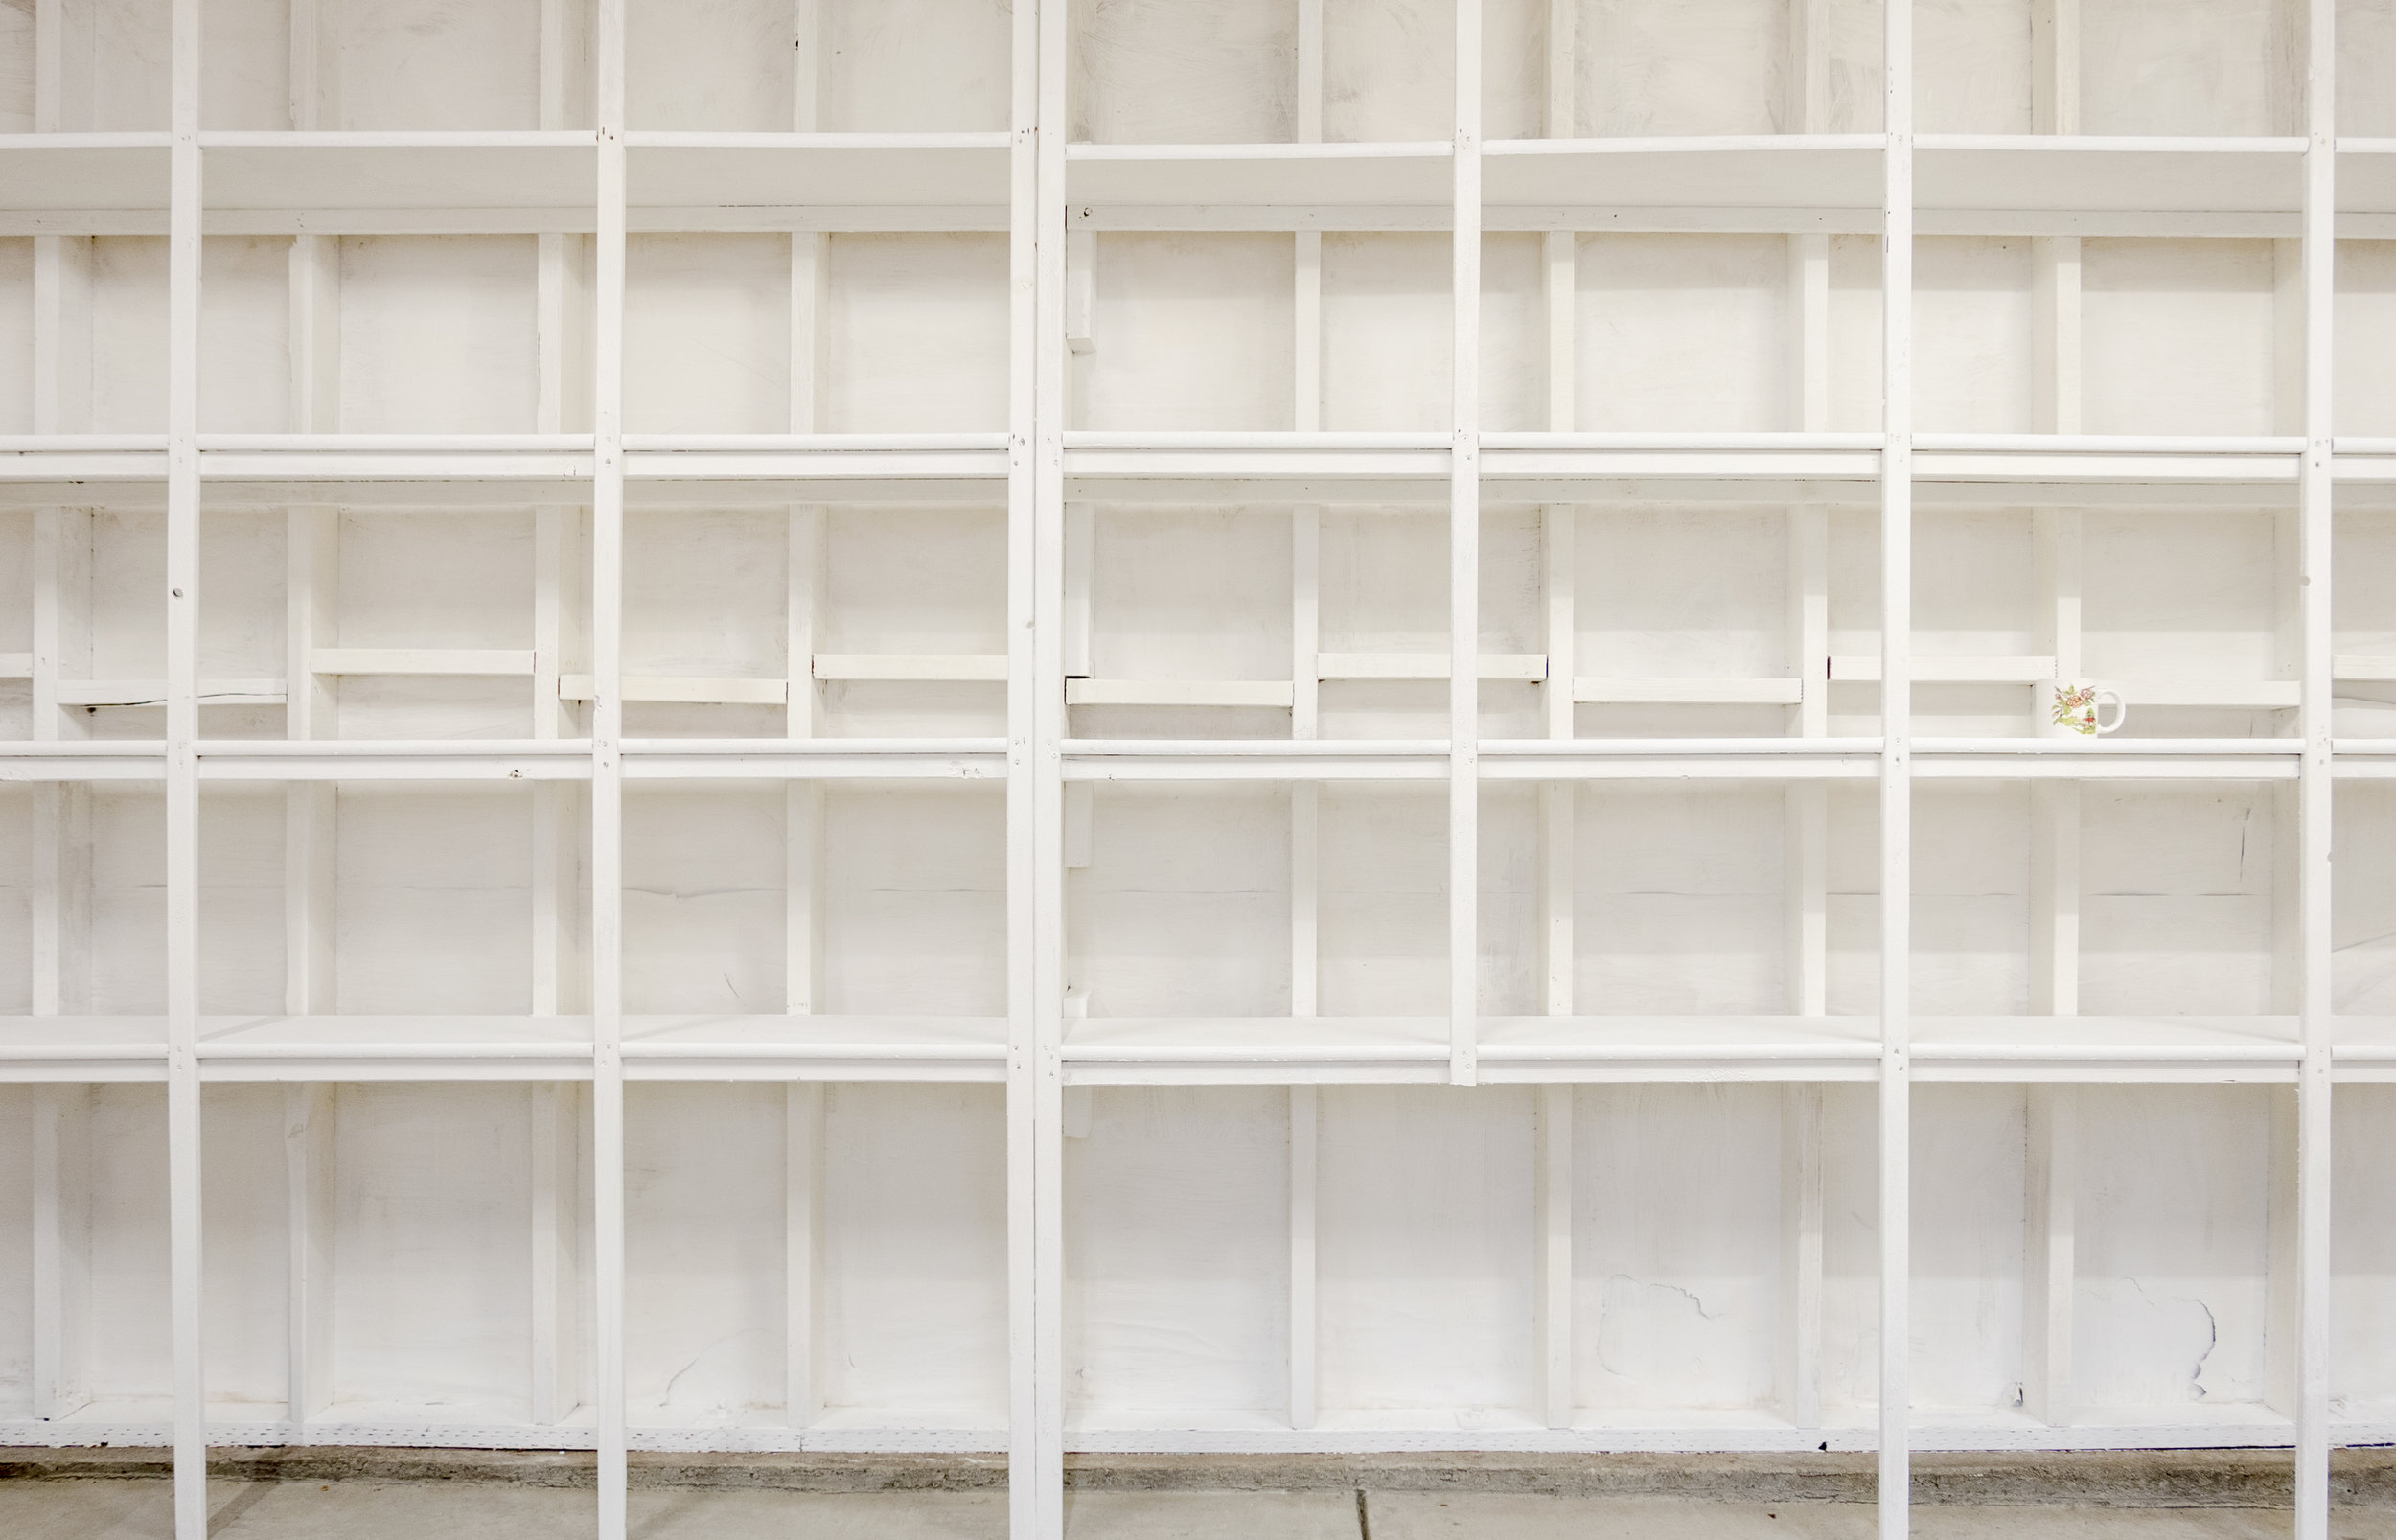 Haynes Riley,  Case Study/Storage Unit,  2019, built-in shelves, coffee mug, 96 × 193.5 × 11.5 in